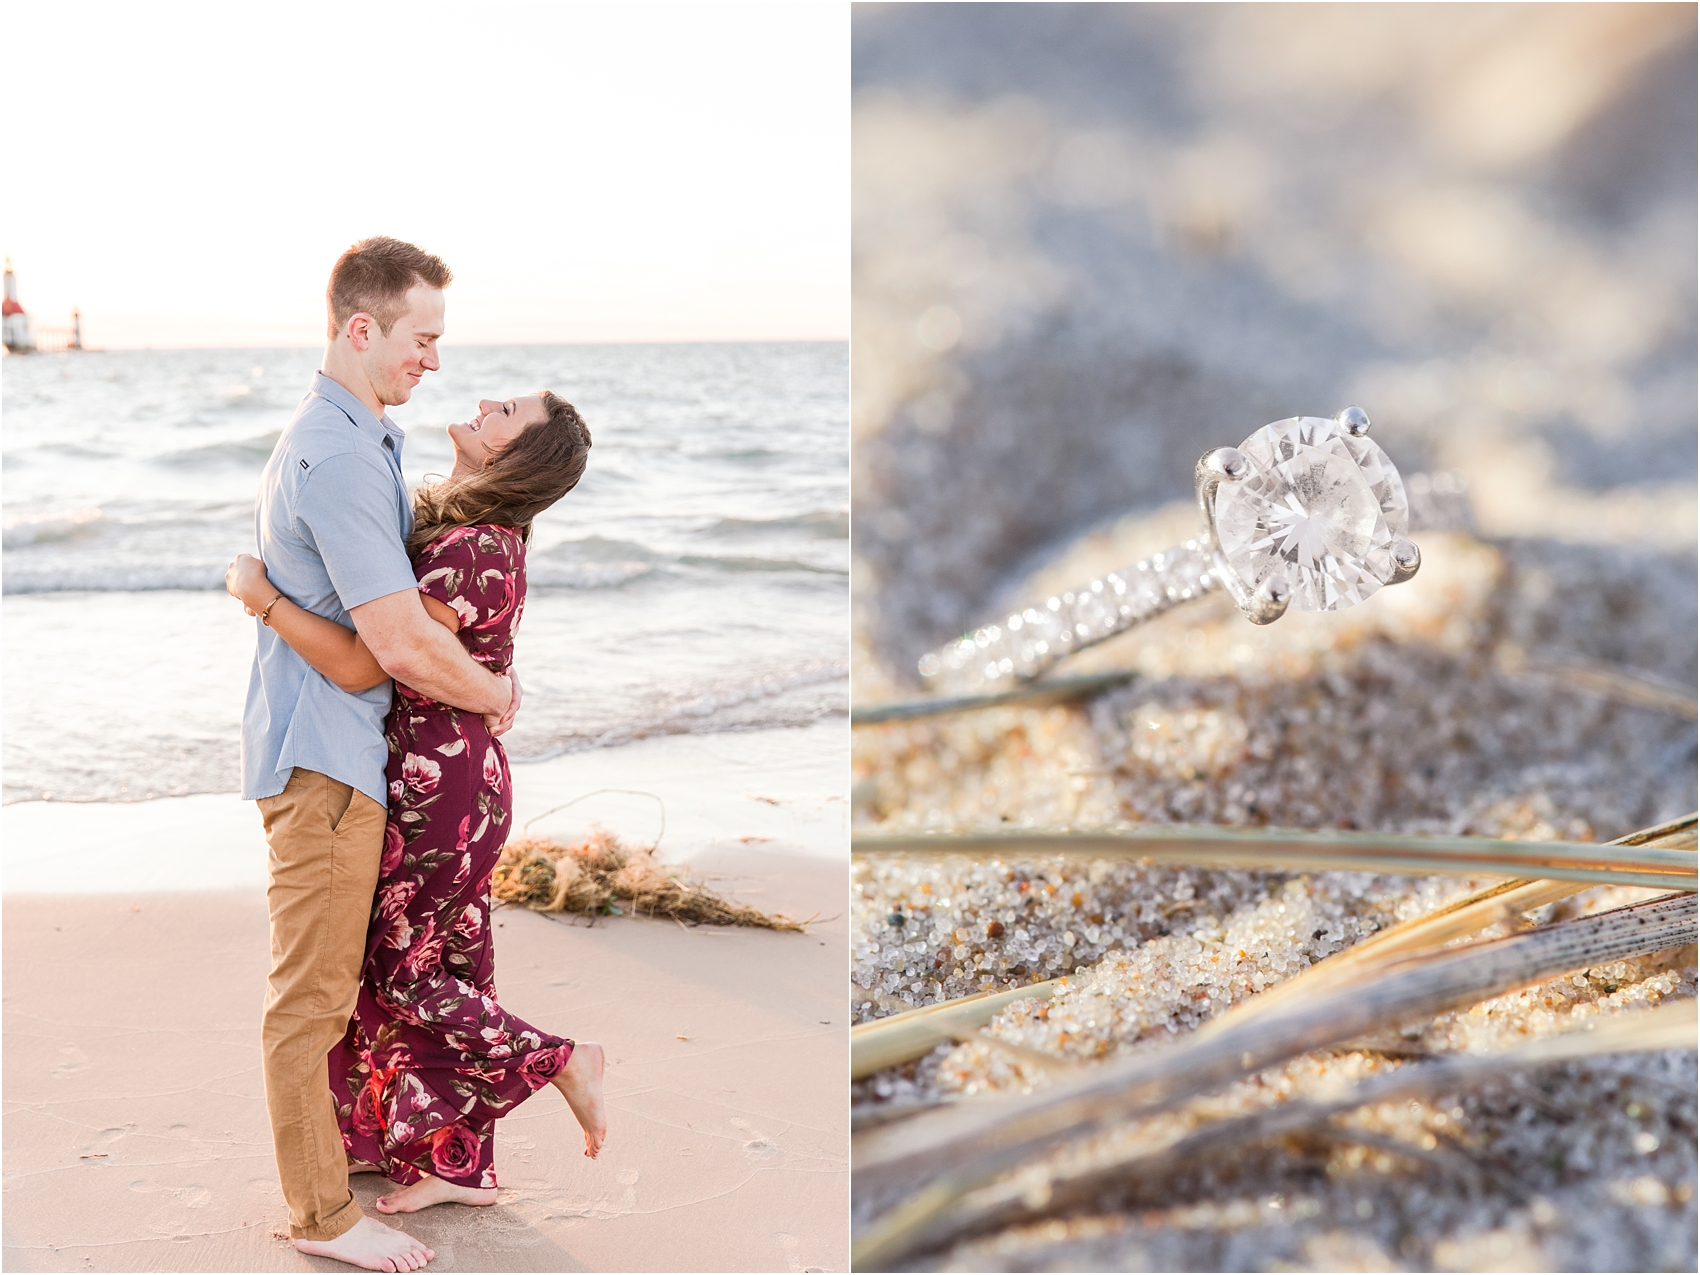 emotional-candid-romantic-engagement-photos-in-detroit-chicago-northern-michigan-by-courtney-carolyn-photography_0013.jpg